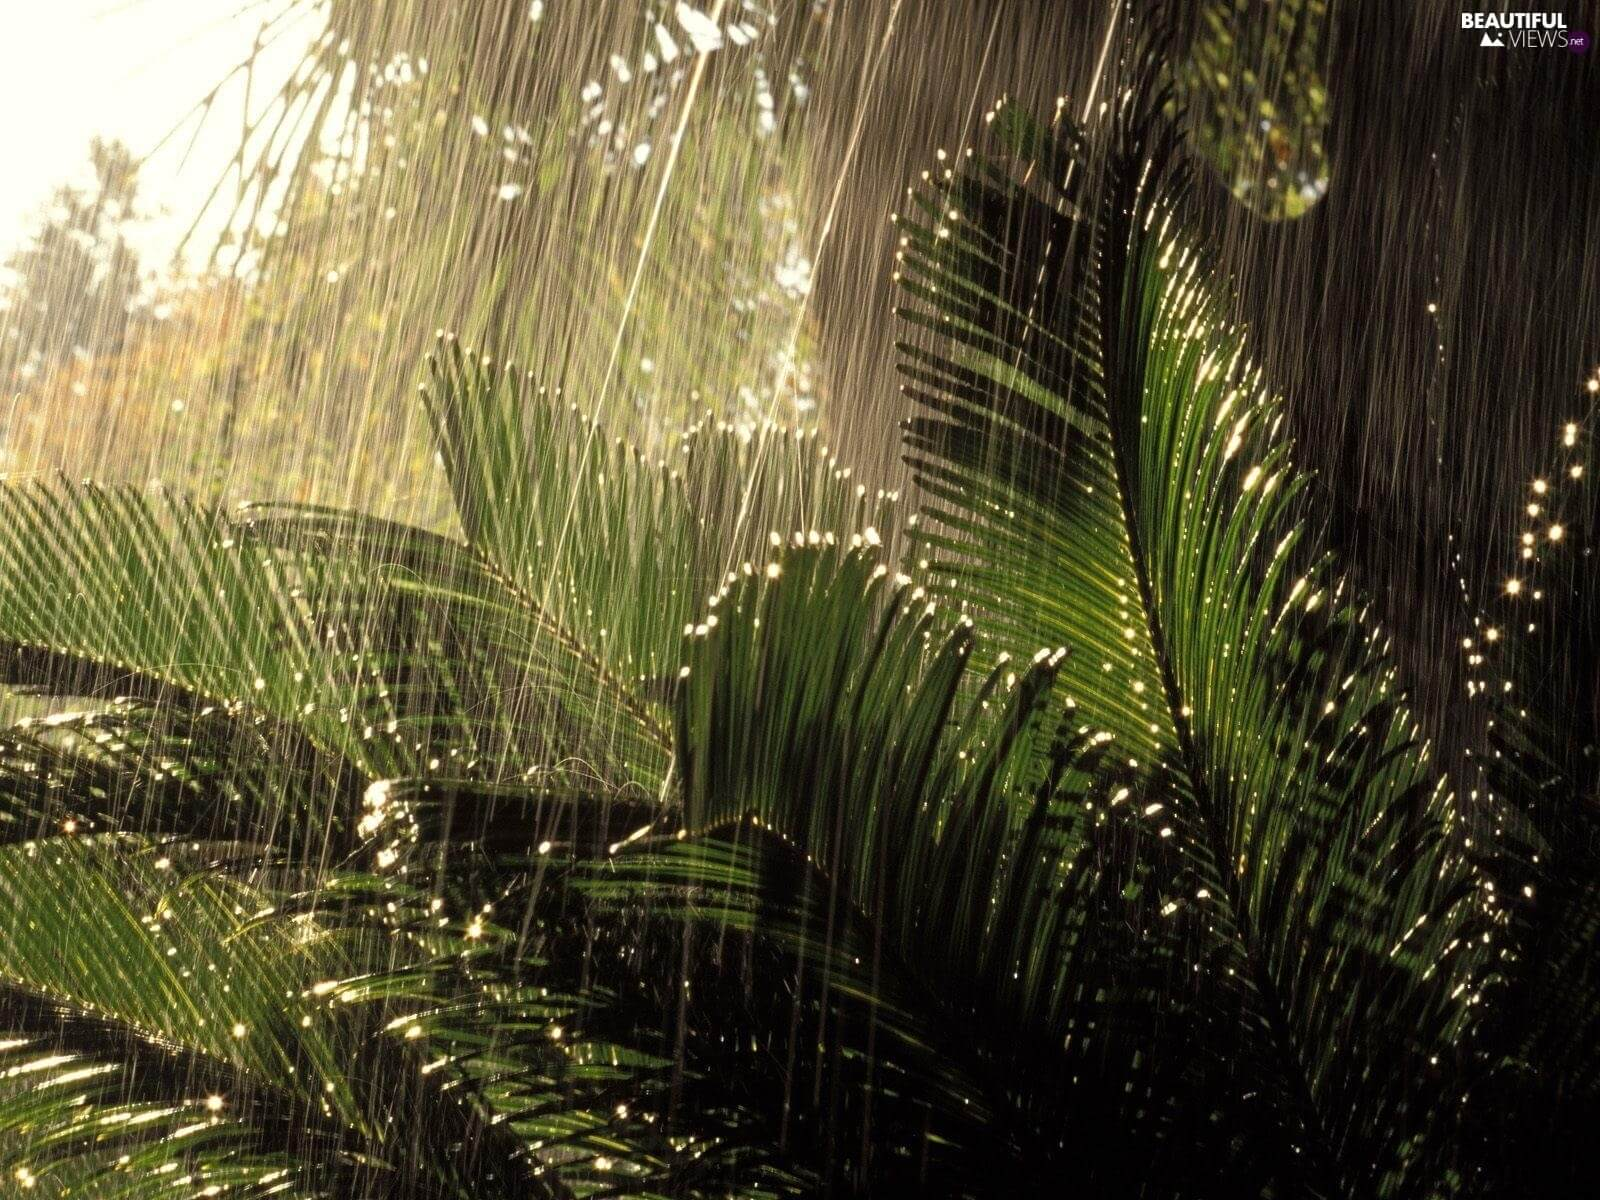 When it rains, the plants are in a state similar to a panic